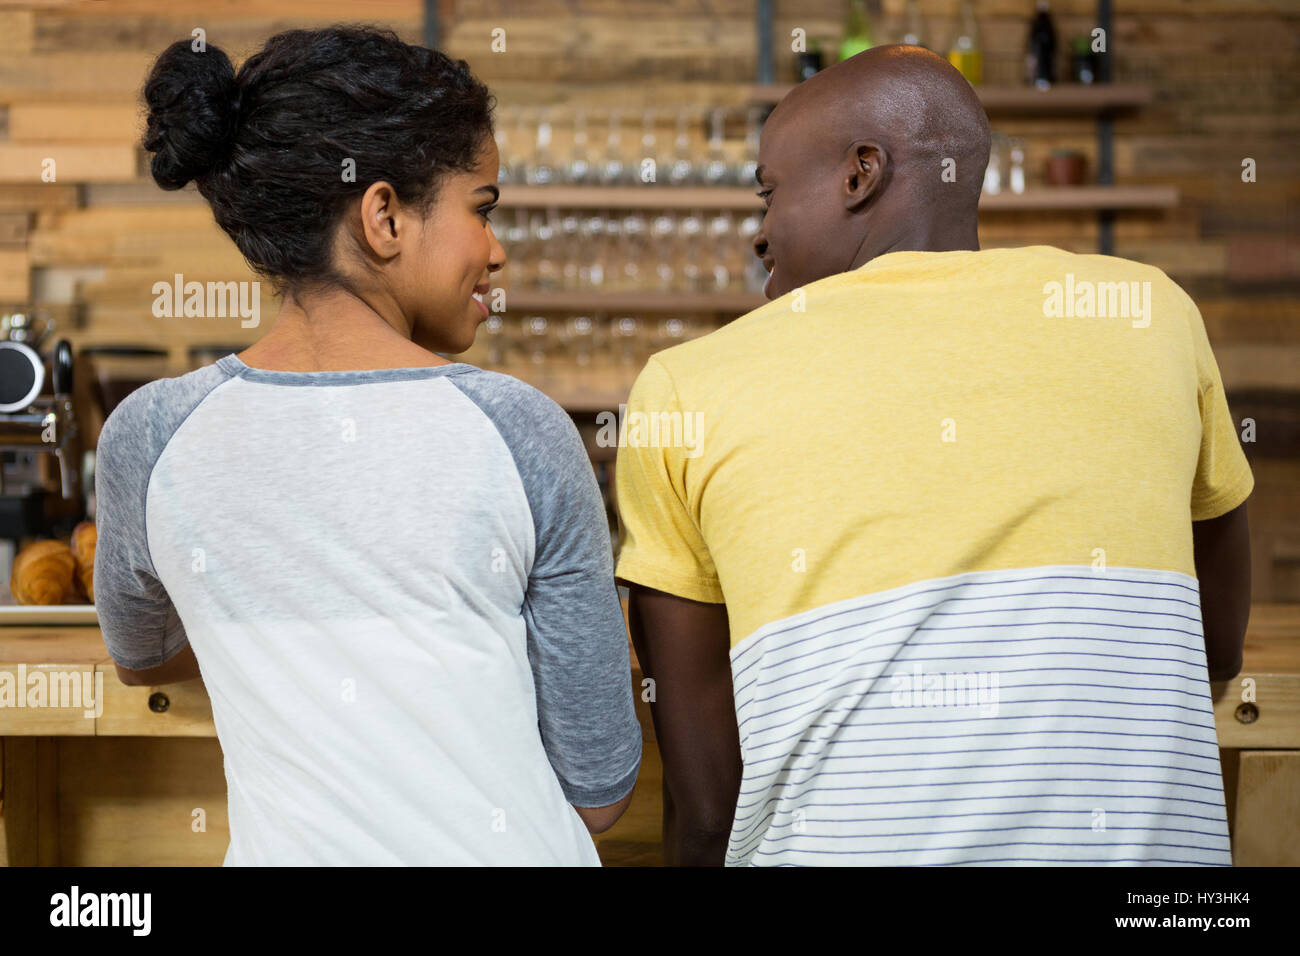 Rear view of young couple looking at each other in coffee shop - Stock Image